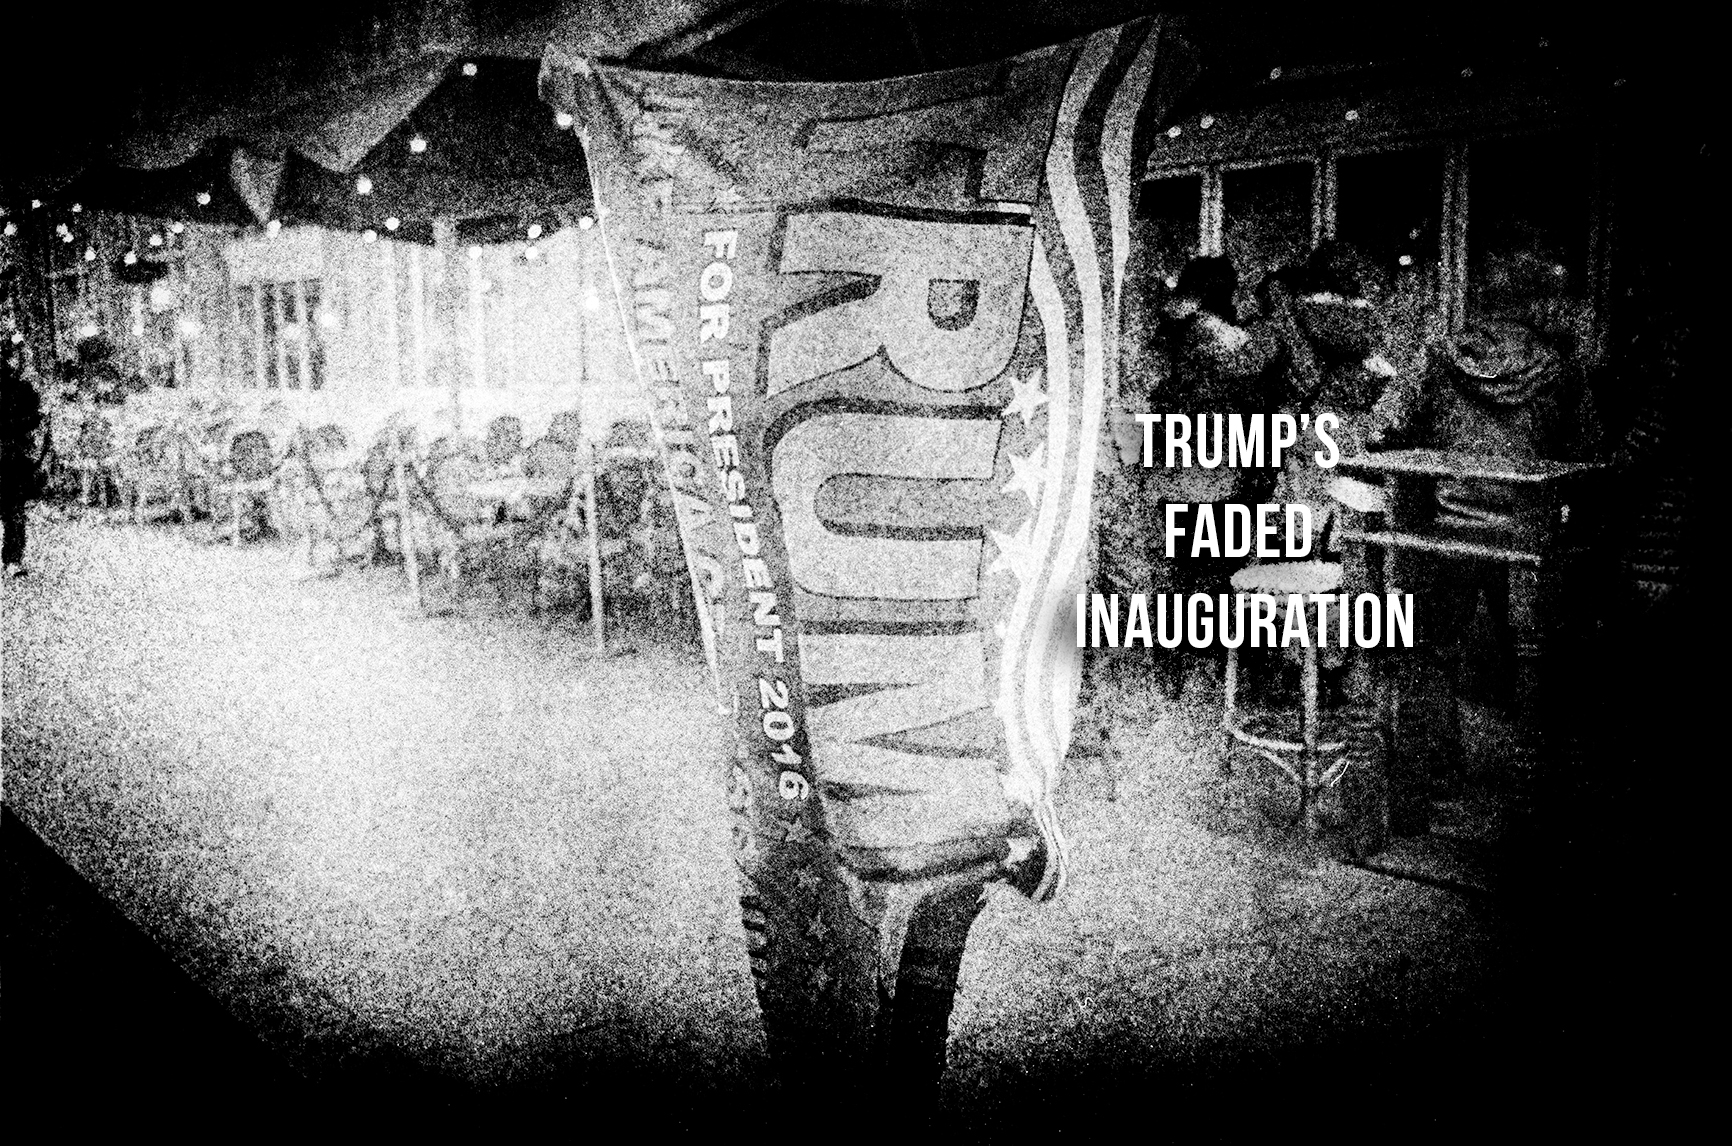 Trumps faded inauguration